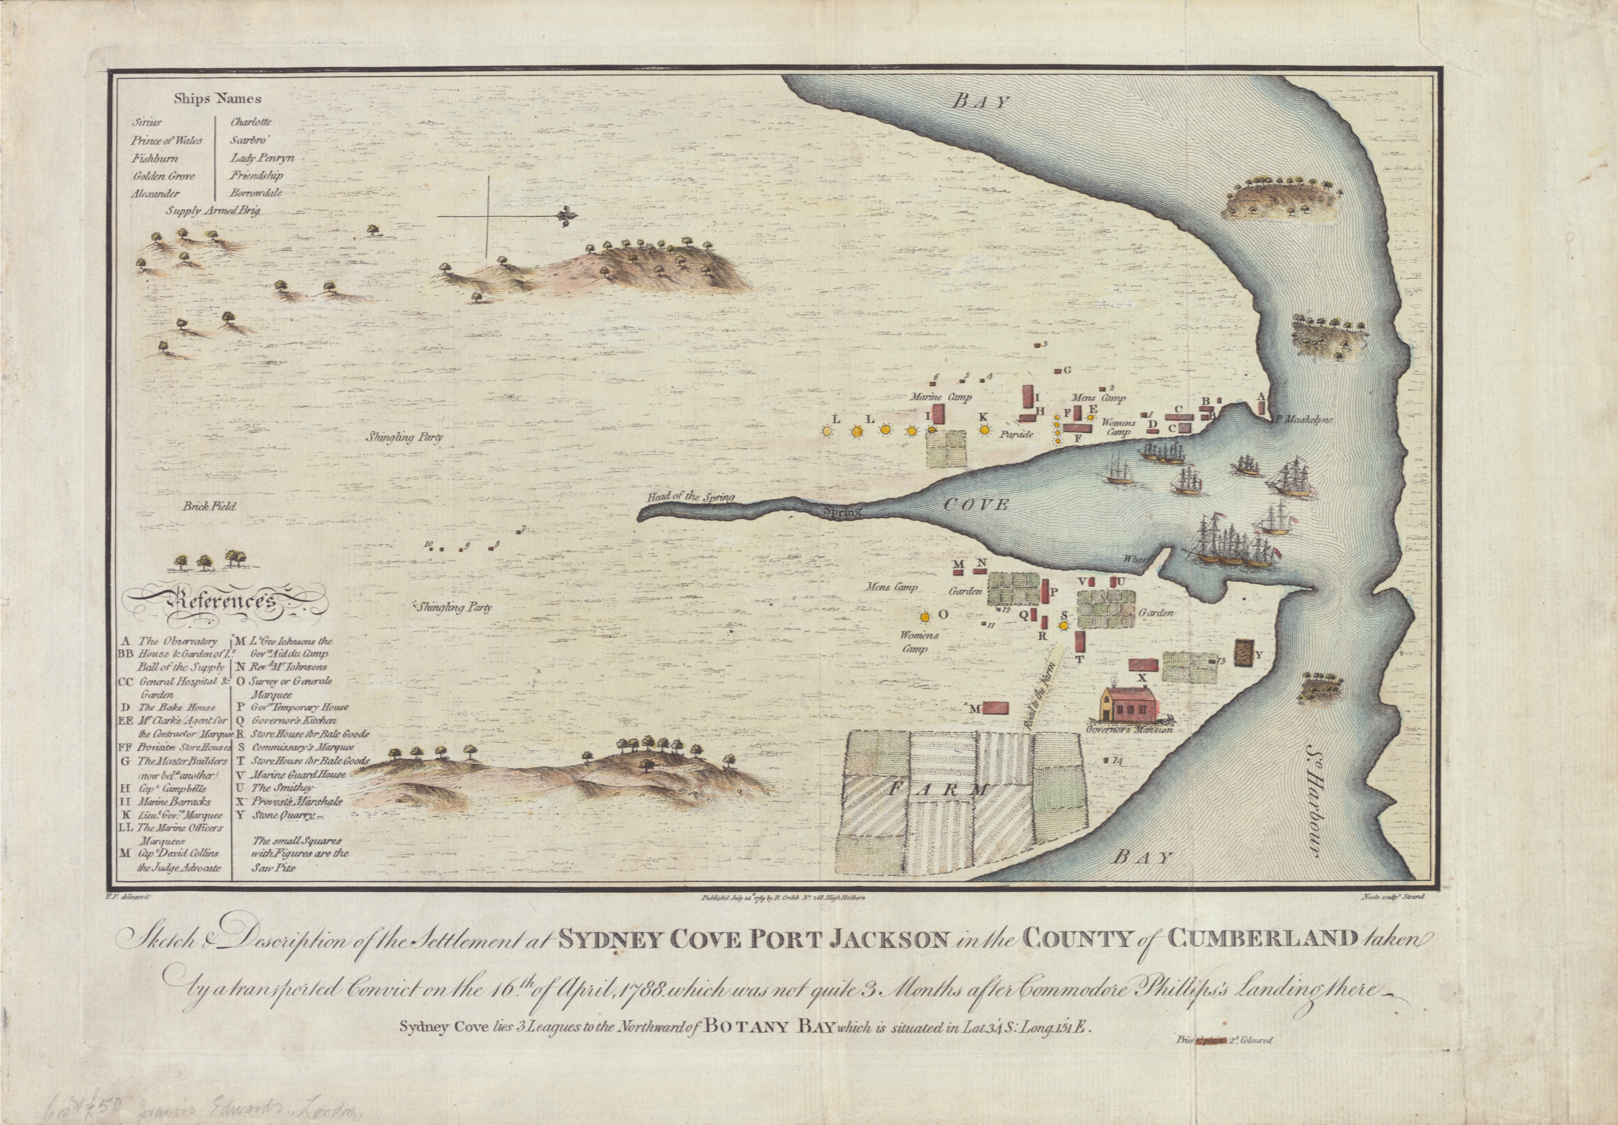 Map of Settlement at Sydney Cove, Port Jackson, Colony of New South Wales, 1788, Francis Fowkes, St. John's Cemetery Project, Old Parramattans, St. John's First Fleeters, First Fleet